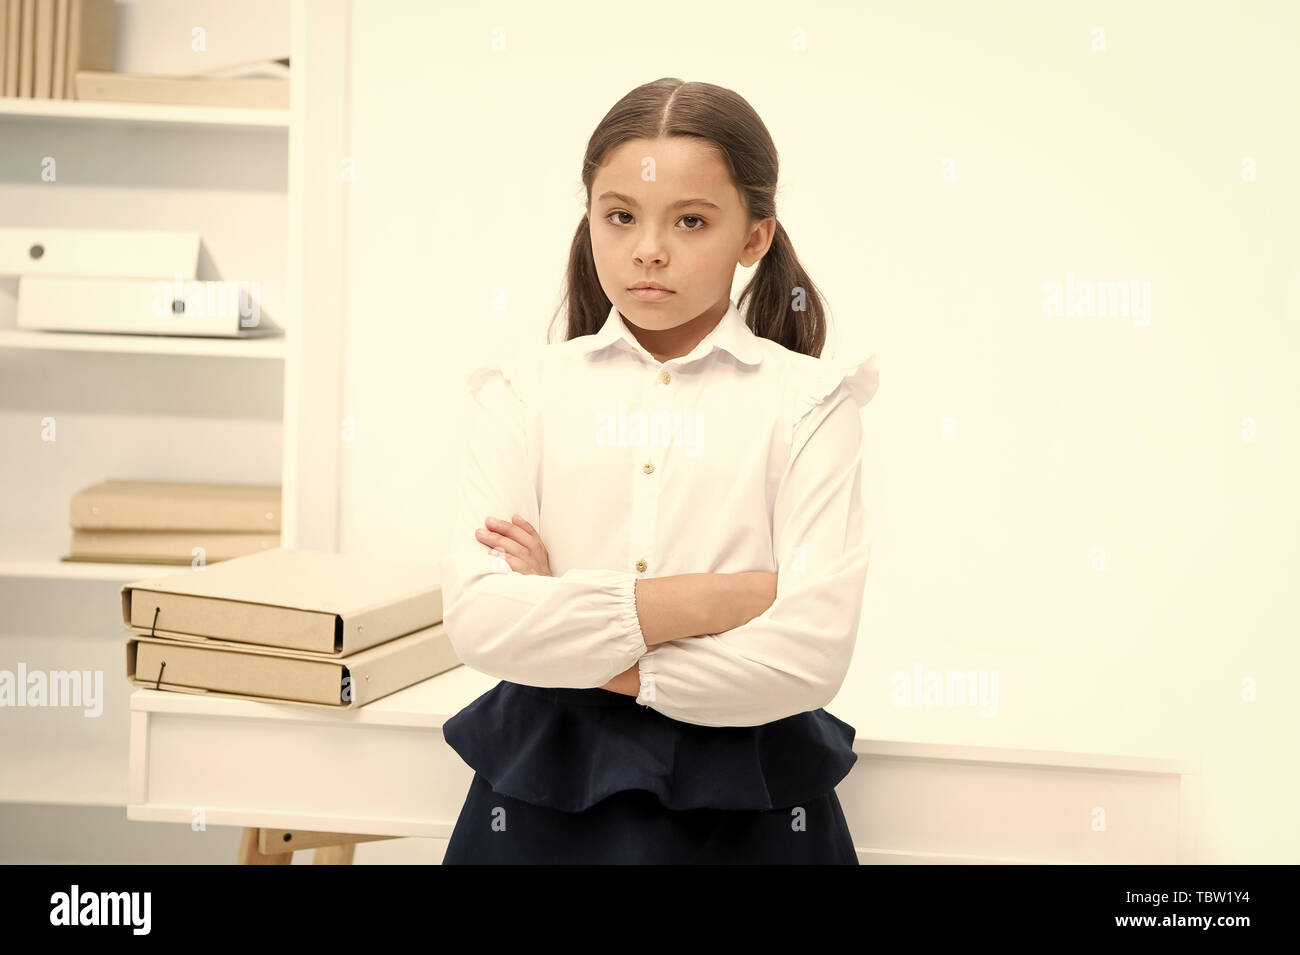 Little but serious. Child girl wears school uniform standing with crossed arms on chest. Schoolgirl smart child looks serious white interior background. Girl serious about knowledge and education. - Stock Image